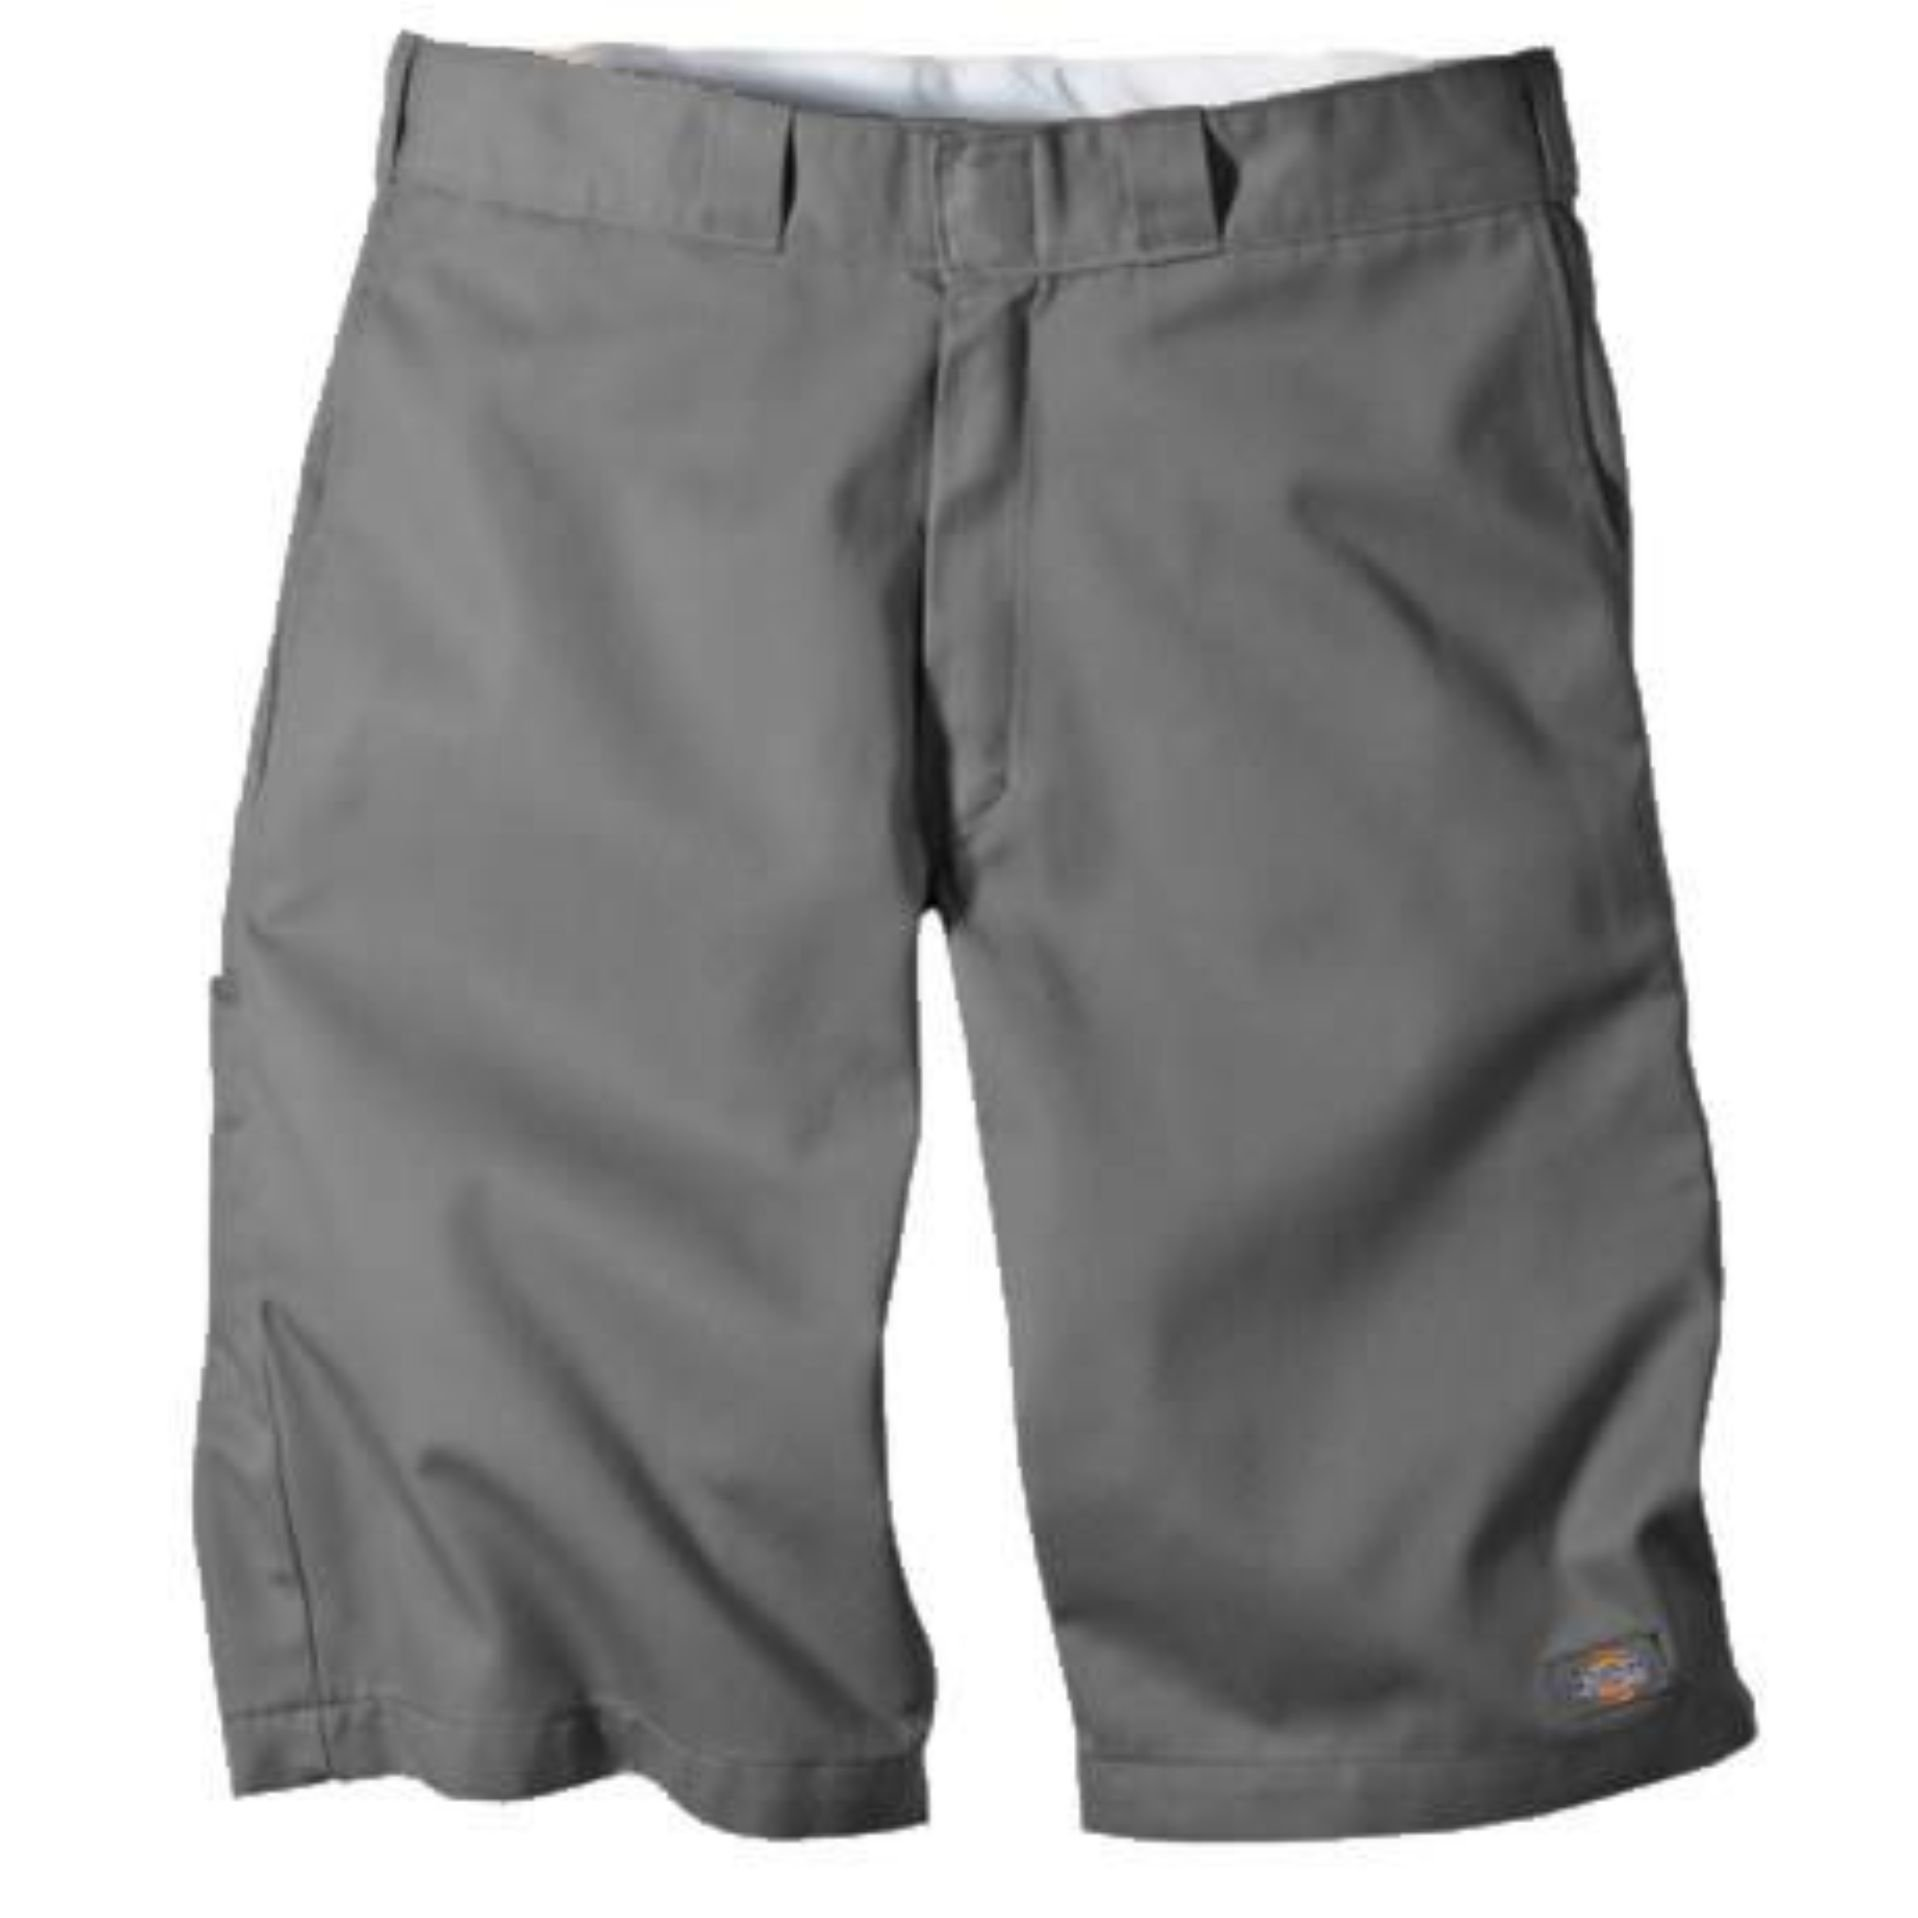 Dickies Mens 13 Inch Relaxed Fit Multi-Pocket Short, Charcoal Grey, 42 by Dickies (Image #1)